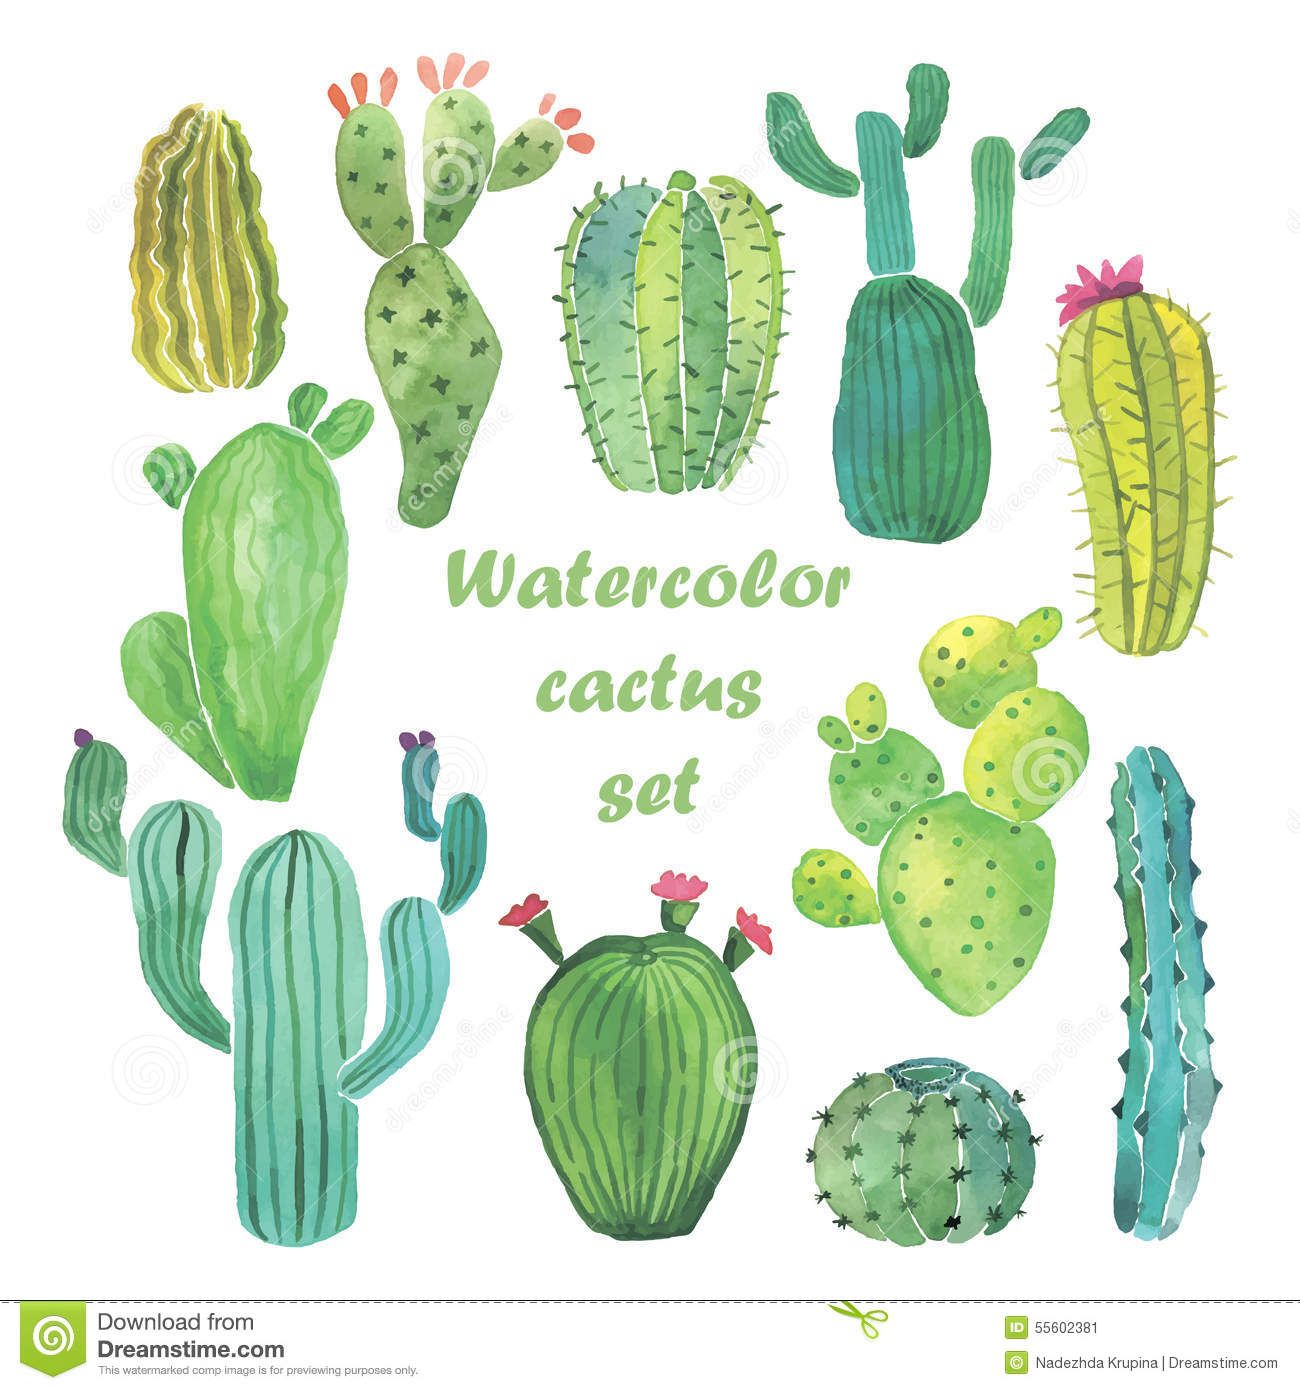 Outside house cactus clipart free to use black and white download Watercolor Cactus Set - Download From Over 61 Million High ... black and white download